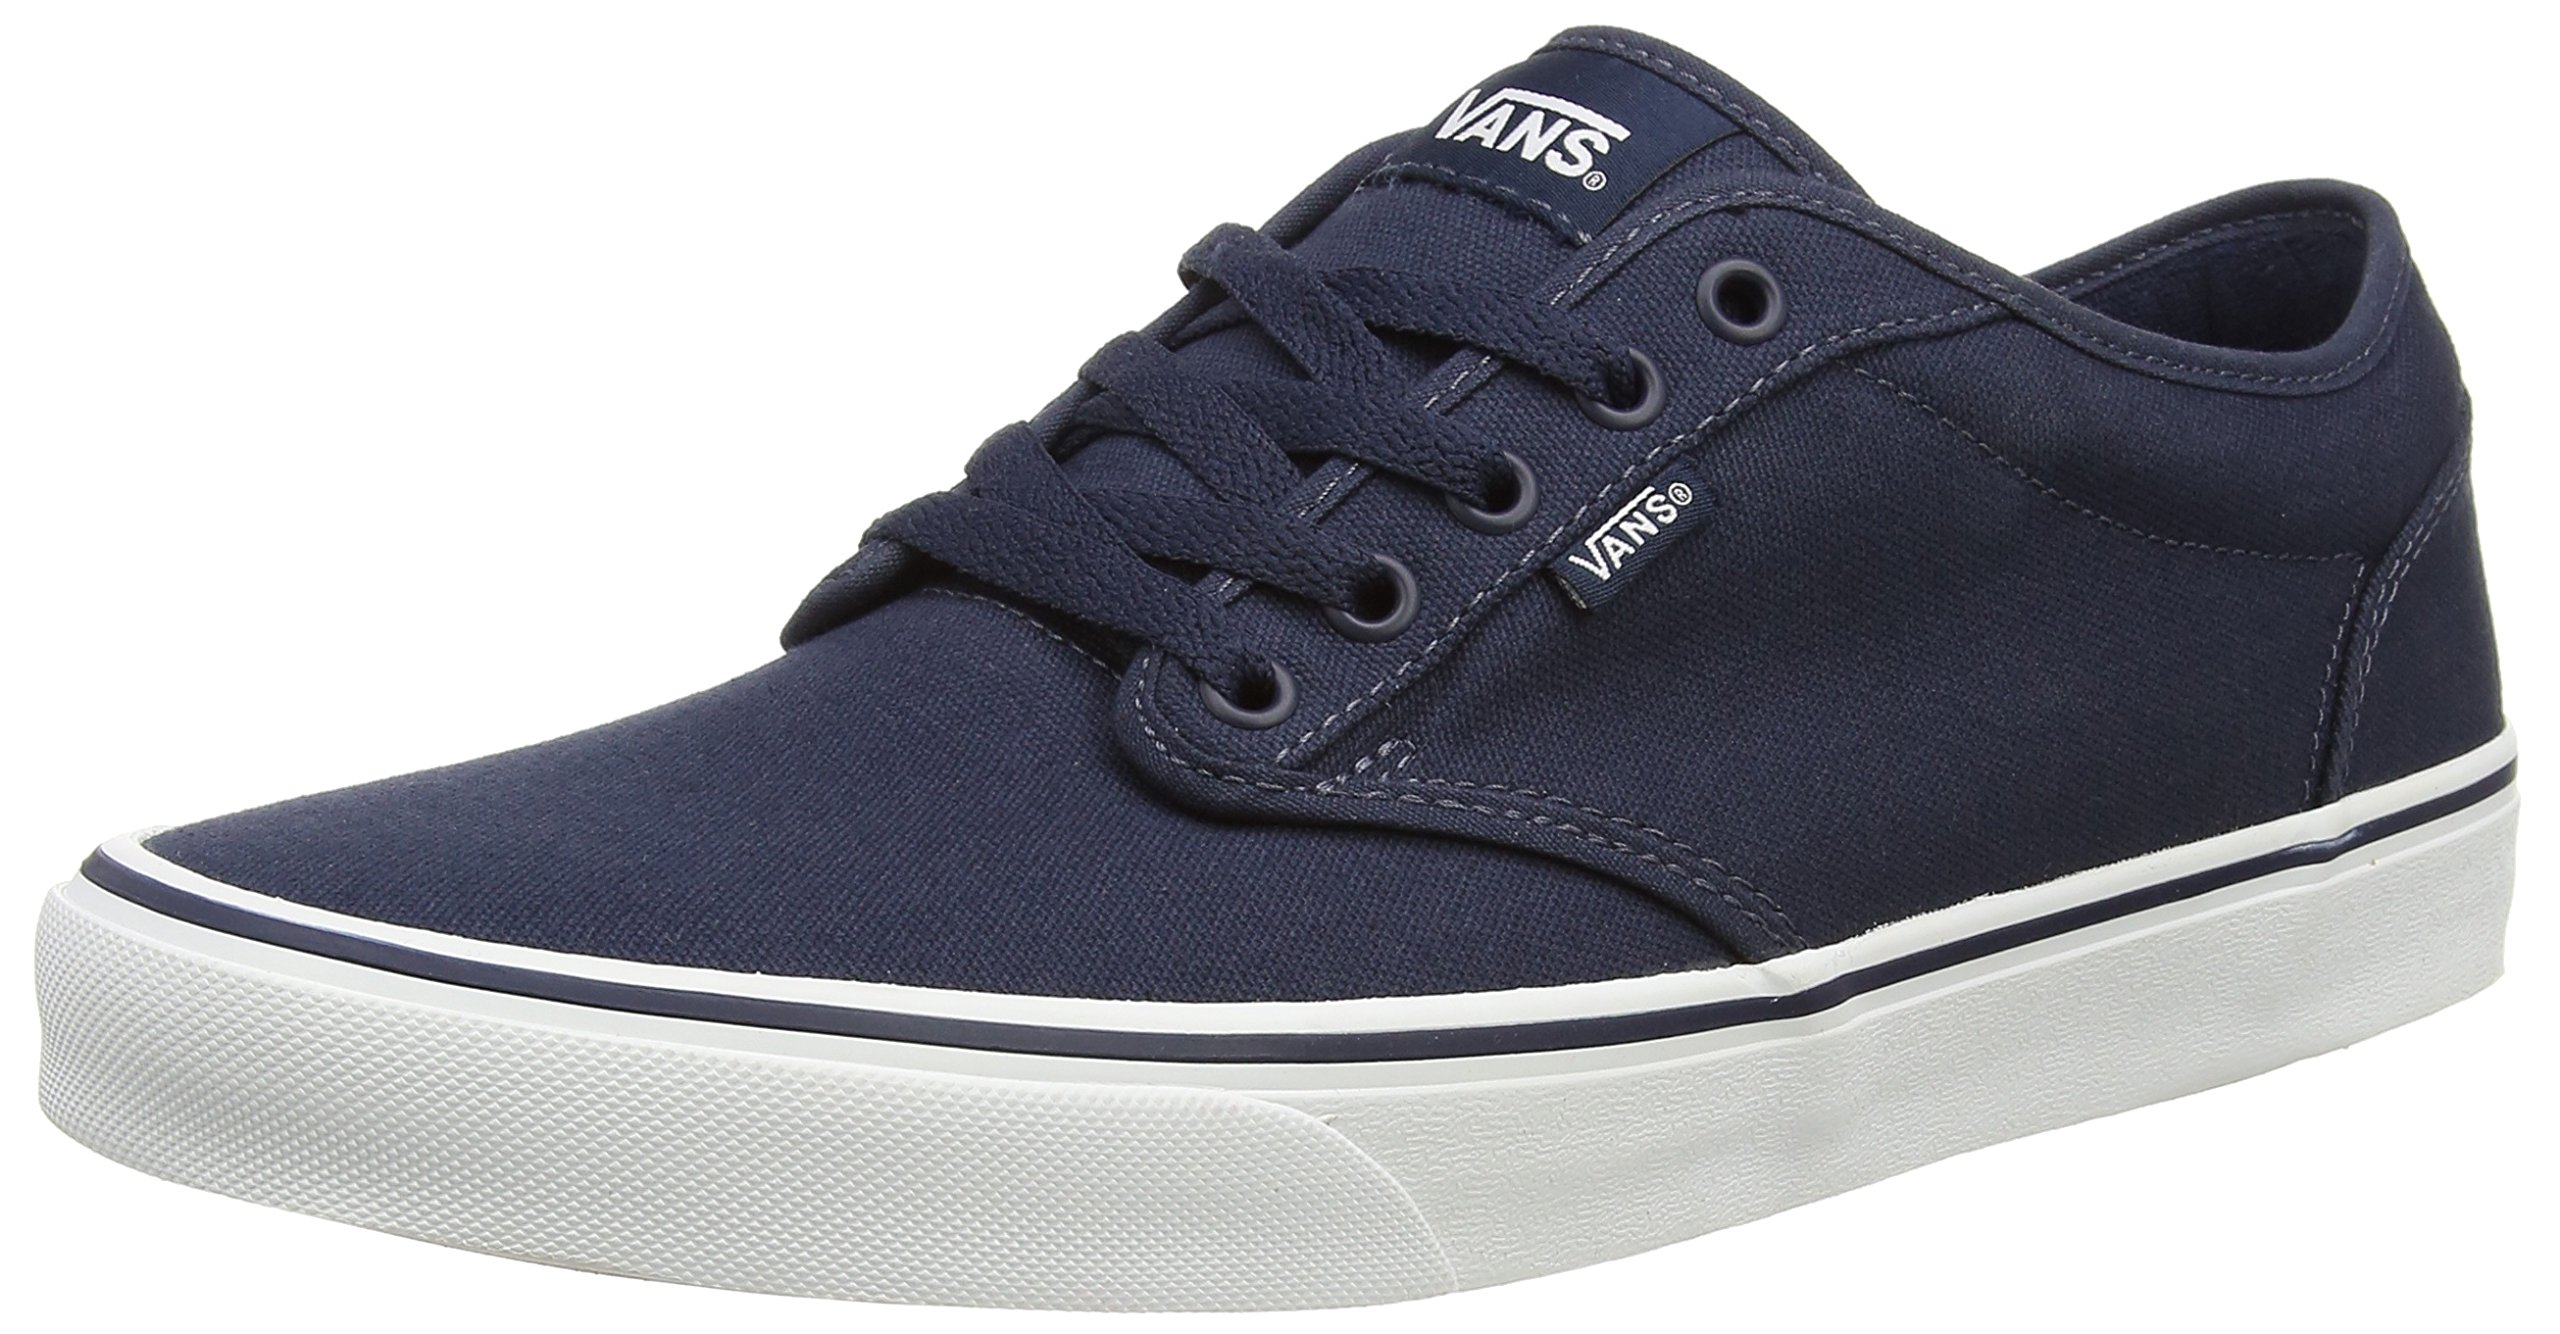 Vans Atwood, Men's Low-Top Sneakers, Blue (Canvas - Navy/White), 5.5 UK (38.5 EU)